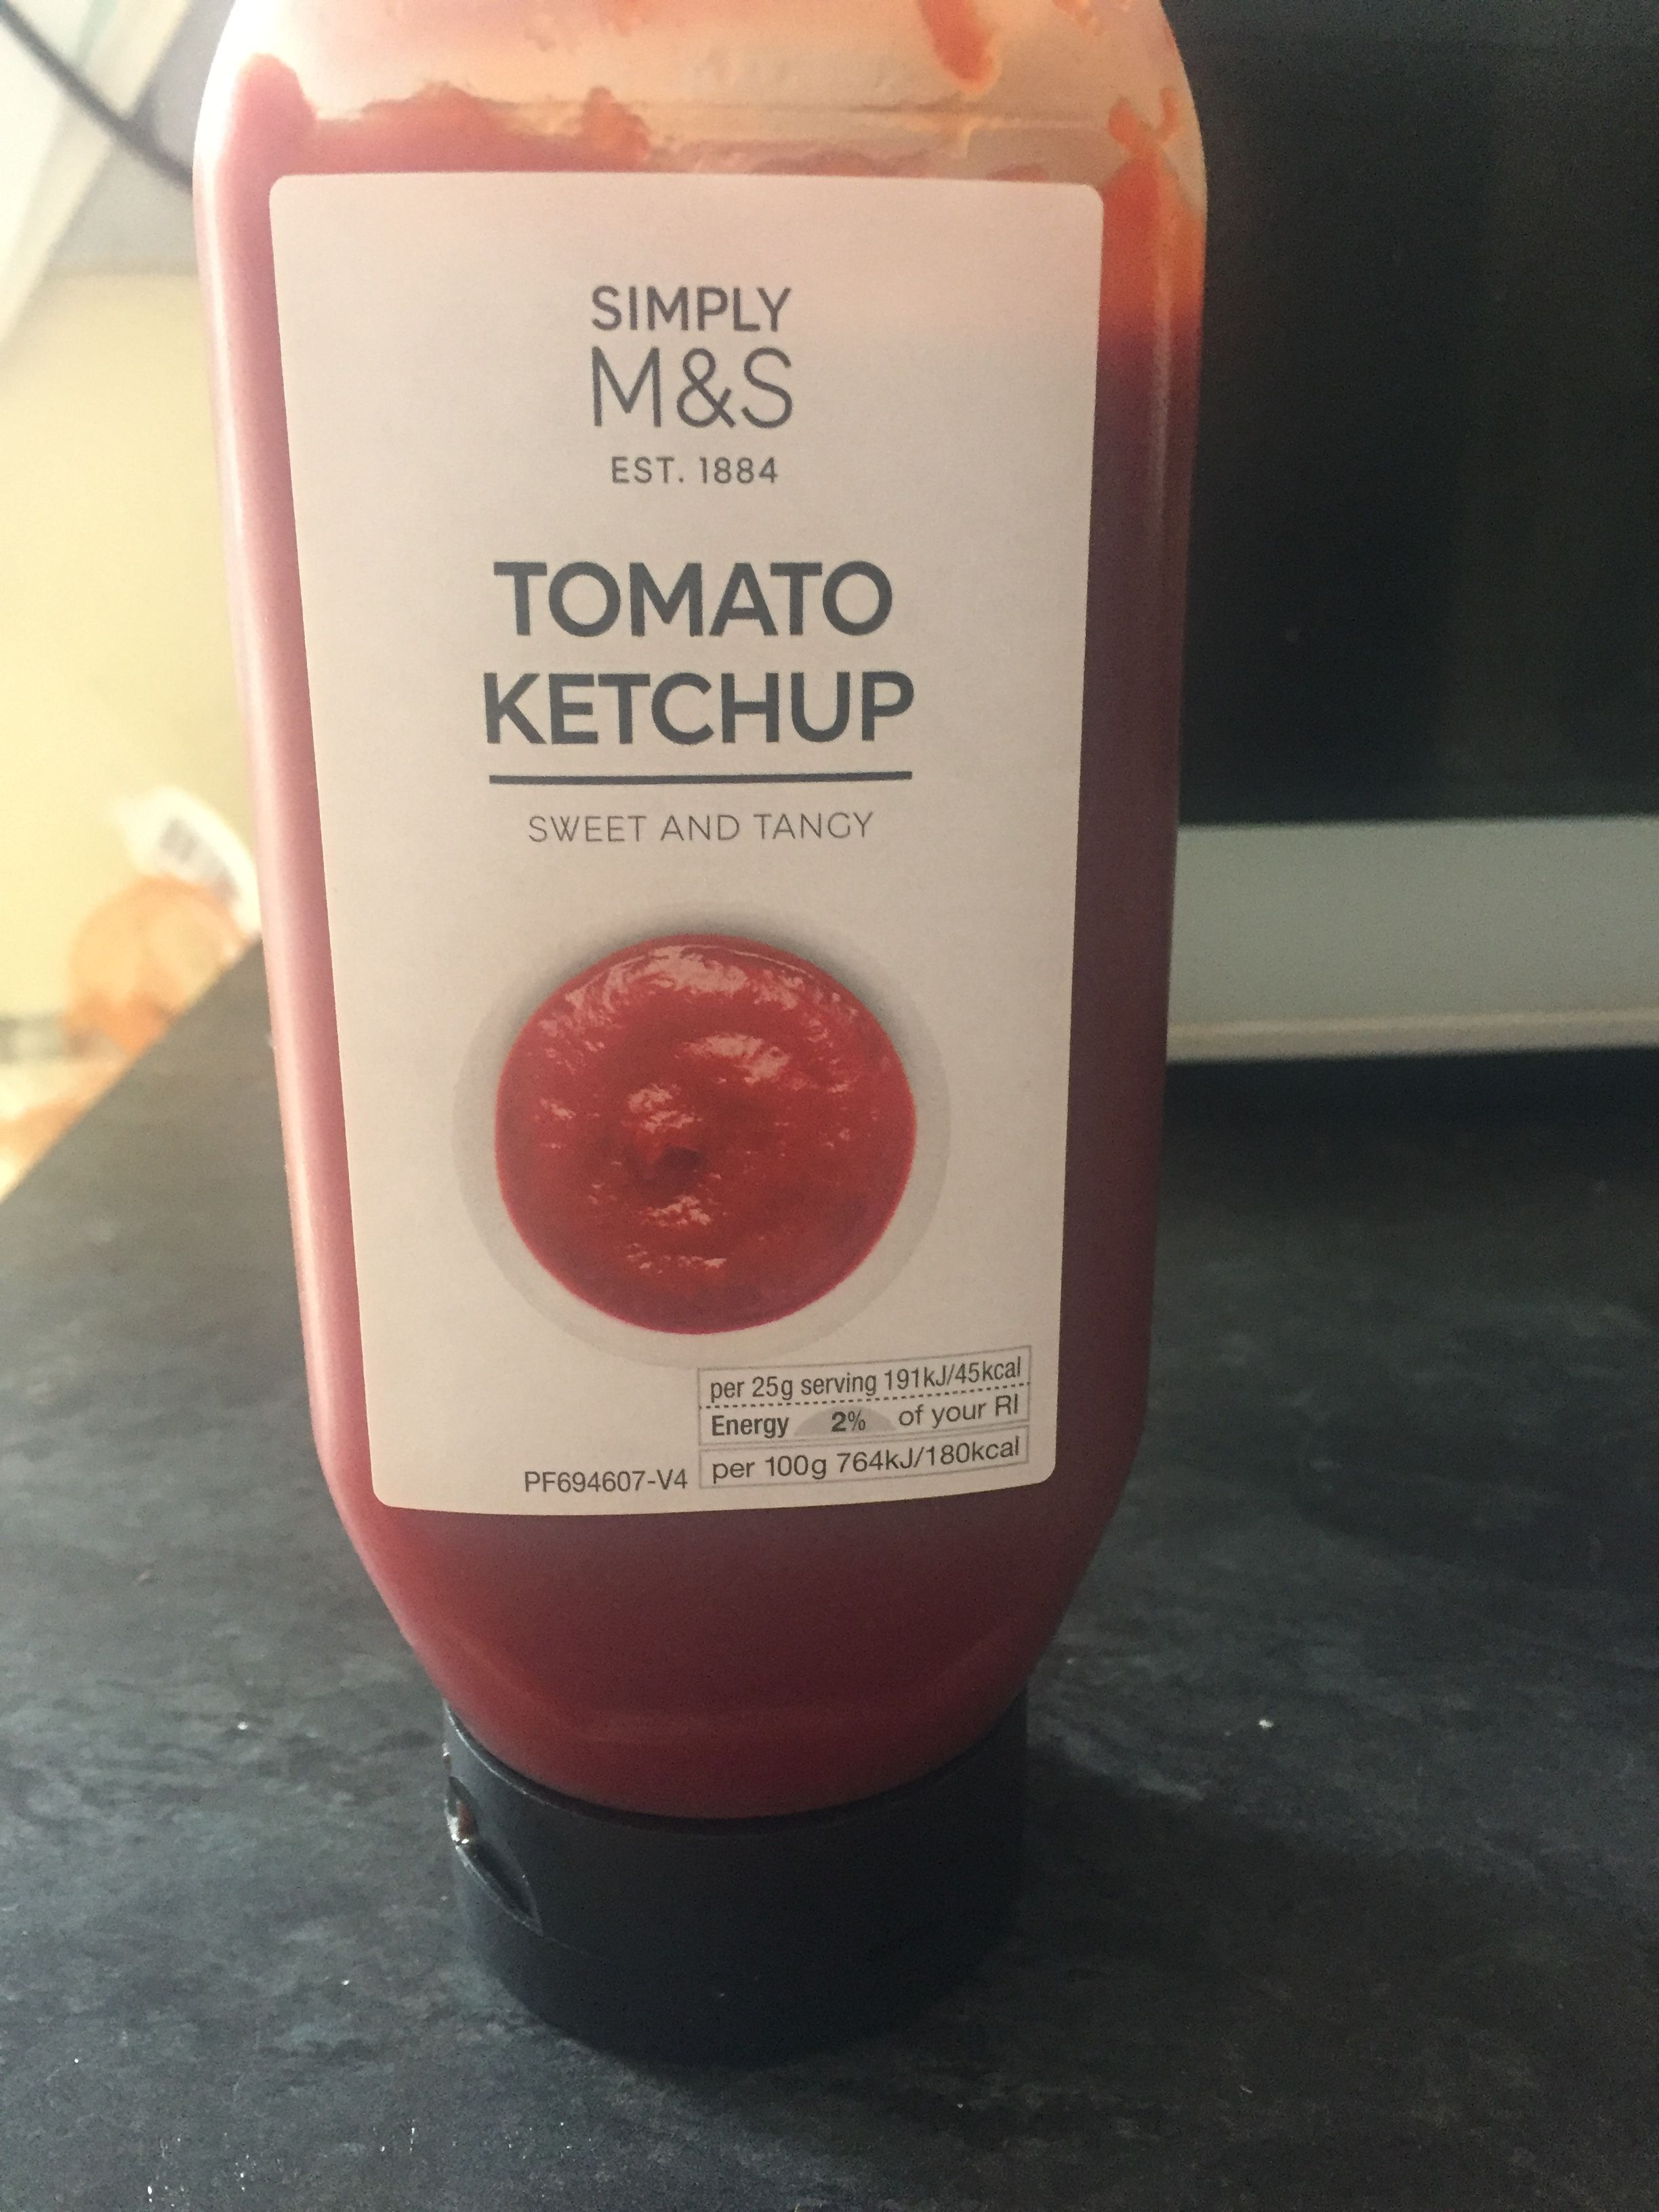 This Is A Ketchup Bottle From Marks And Spencer S The Label Used Is Plain And Simple Compared To The Tesco S One I Think This Ketchup Bottle Wine Bottle Bottle